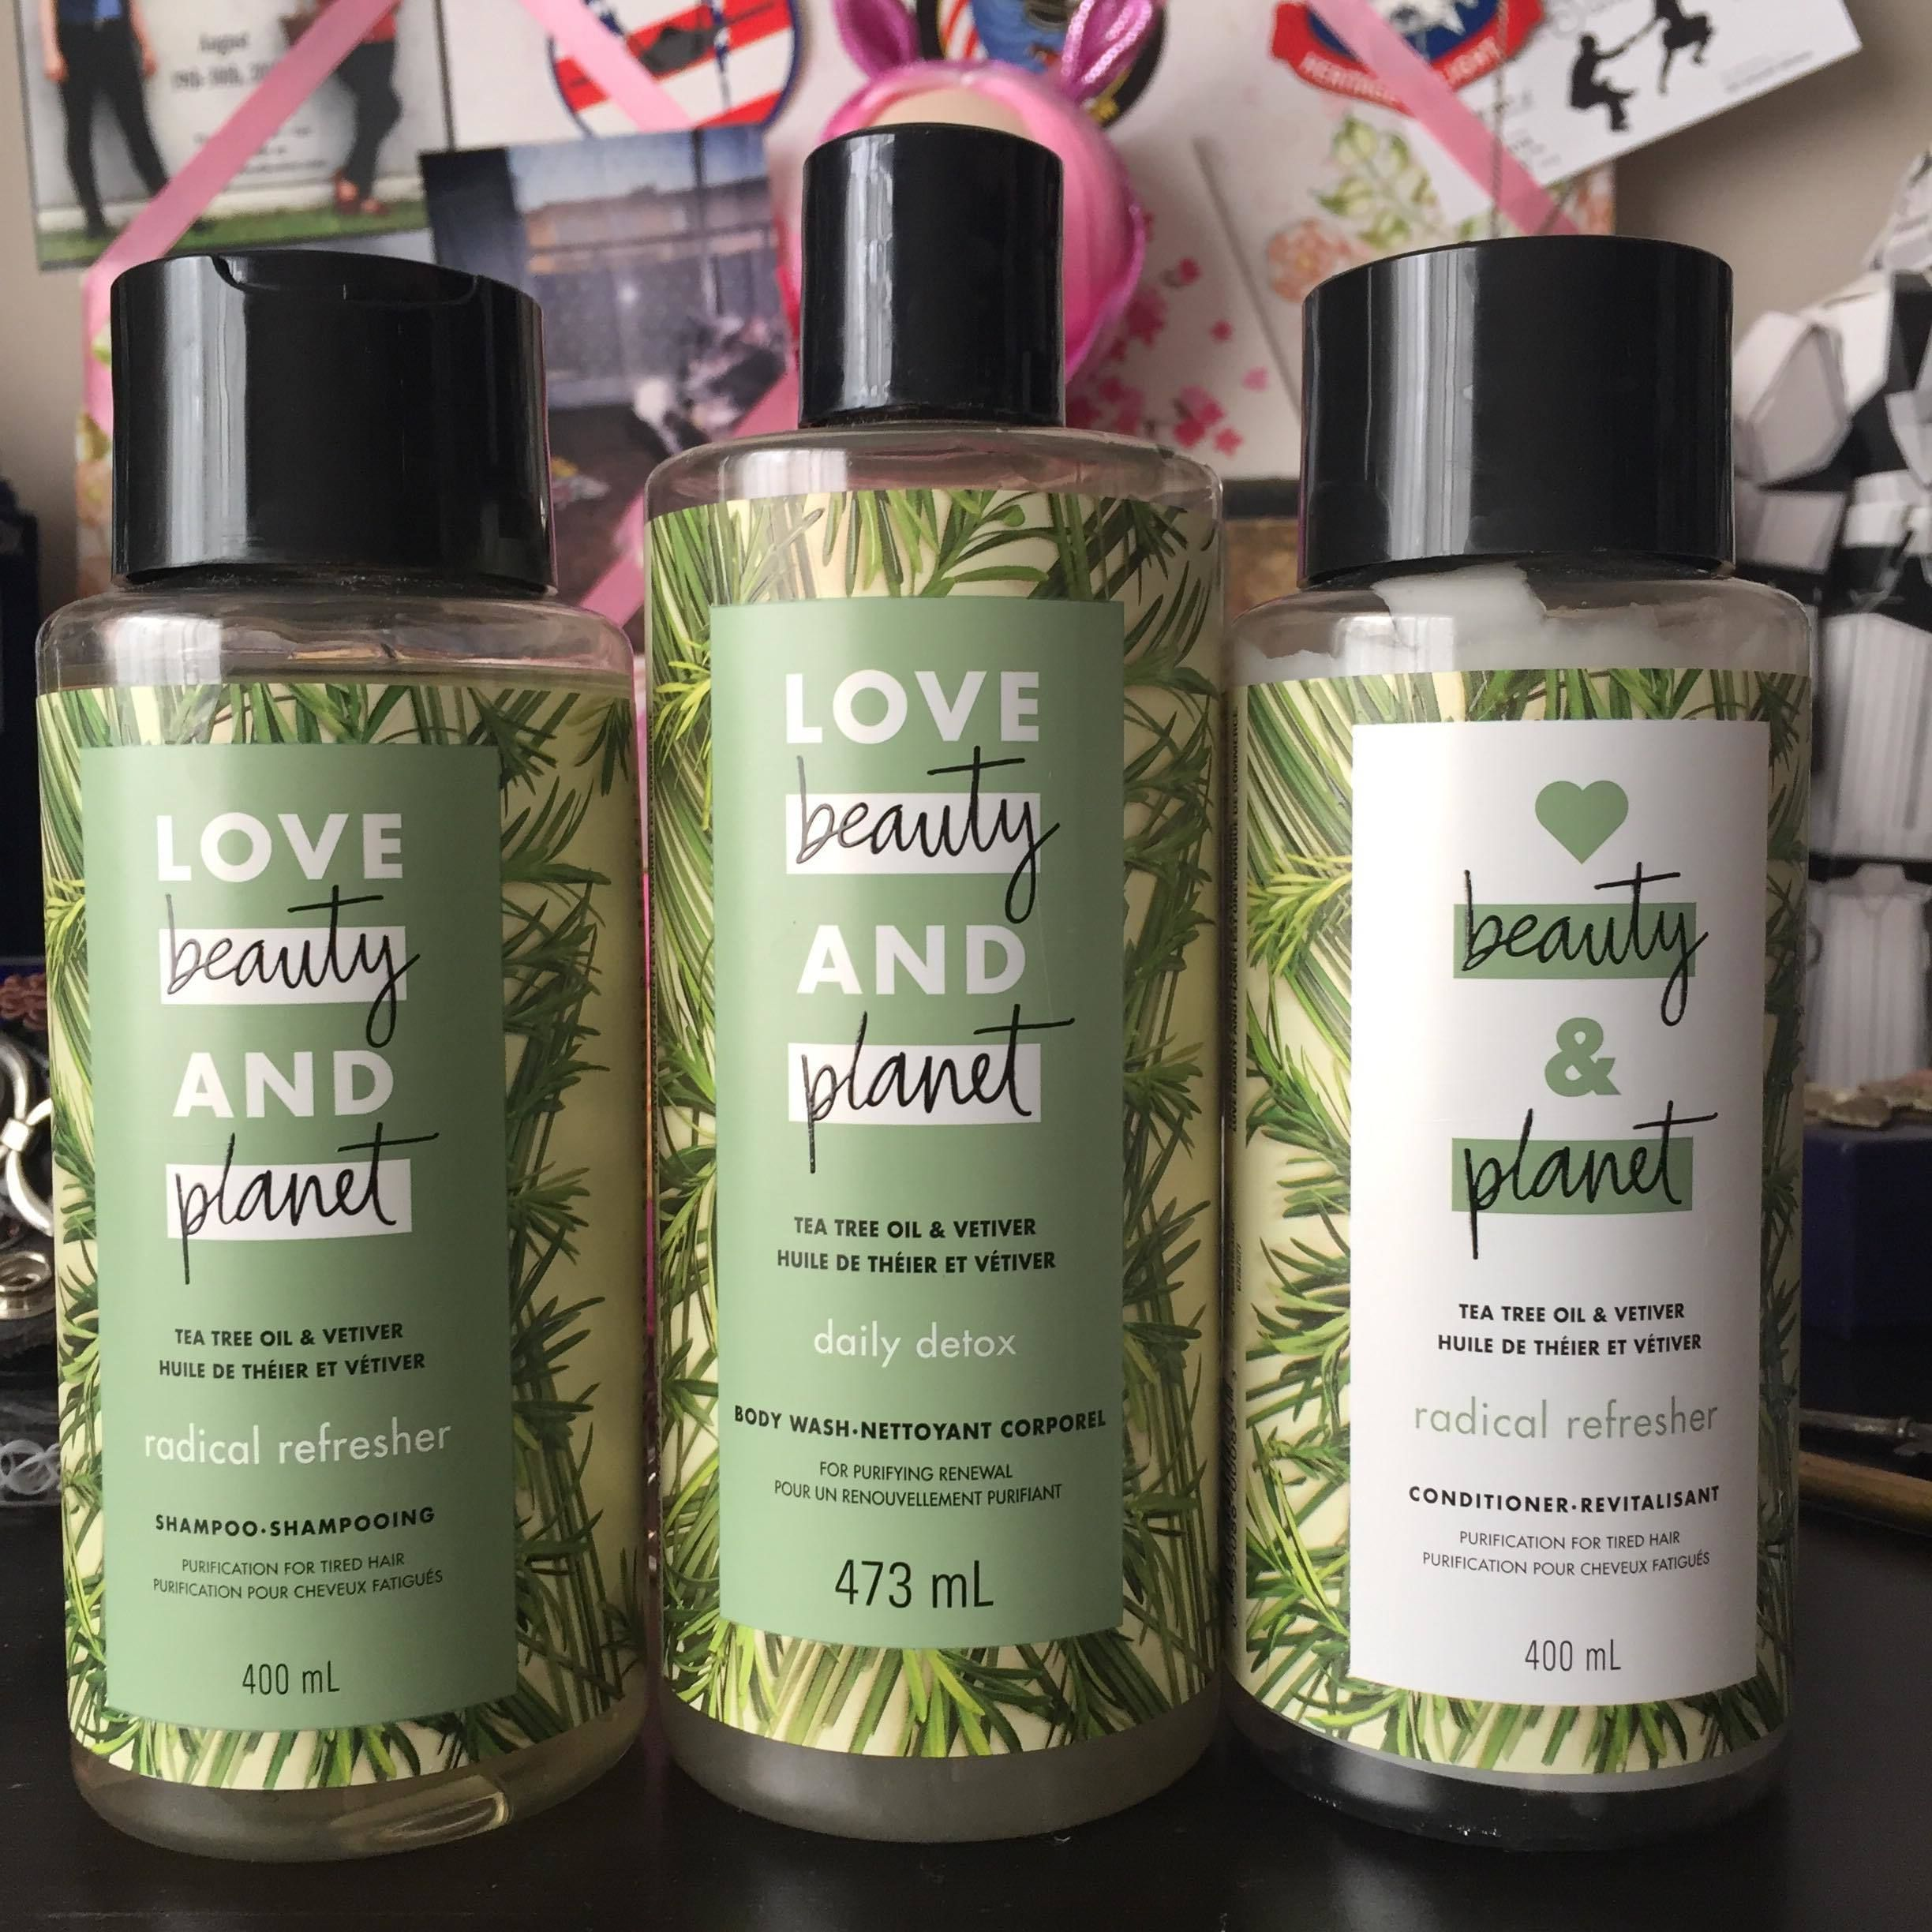 Love Beauty Planet Tea Tree Oil Vetiver Radical Refresher